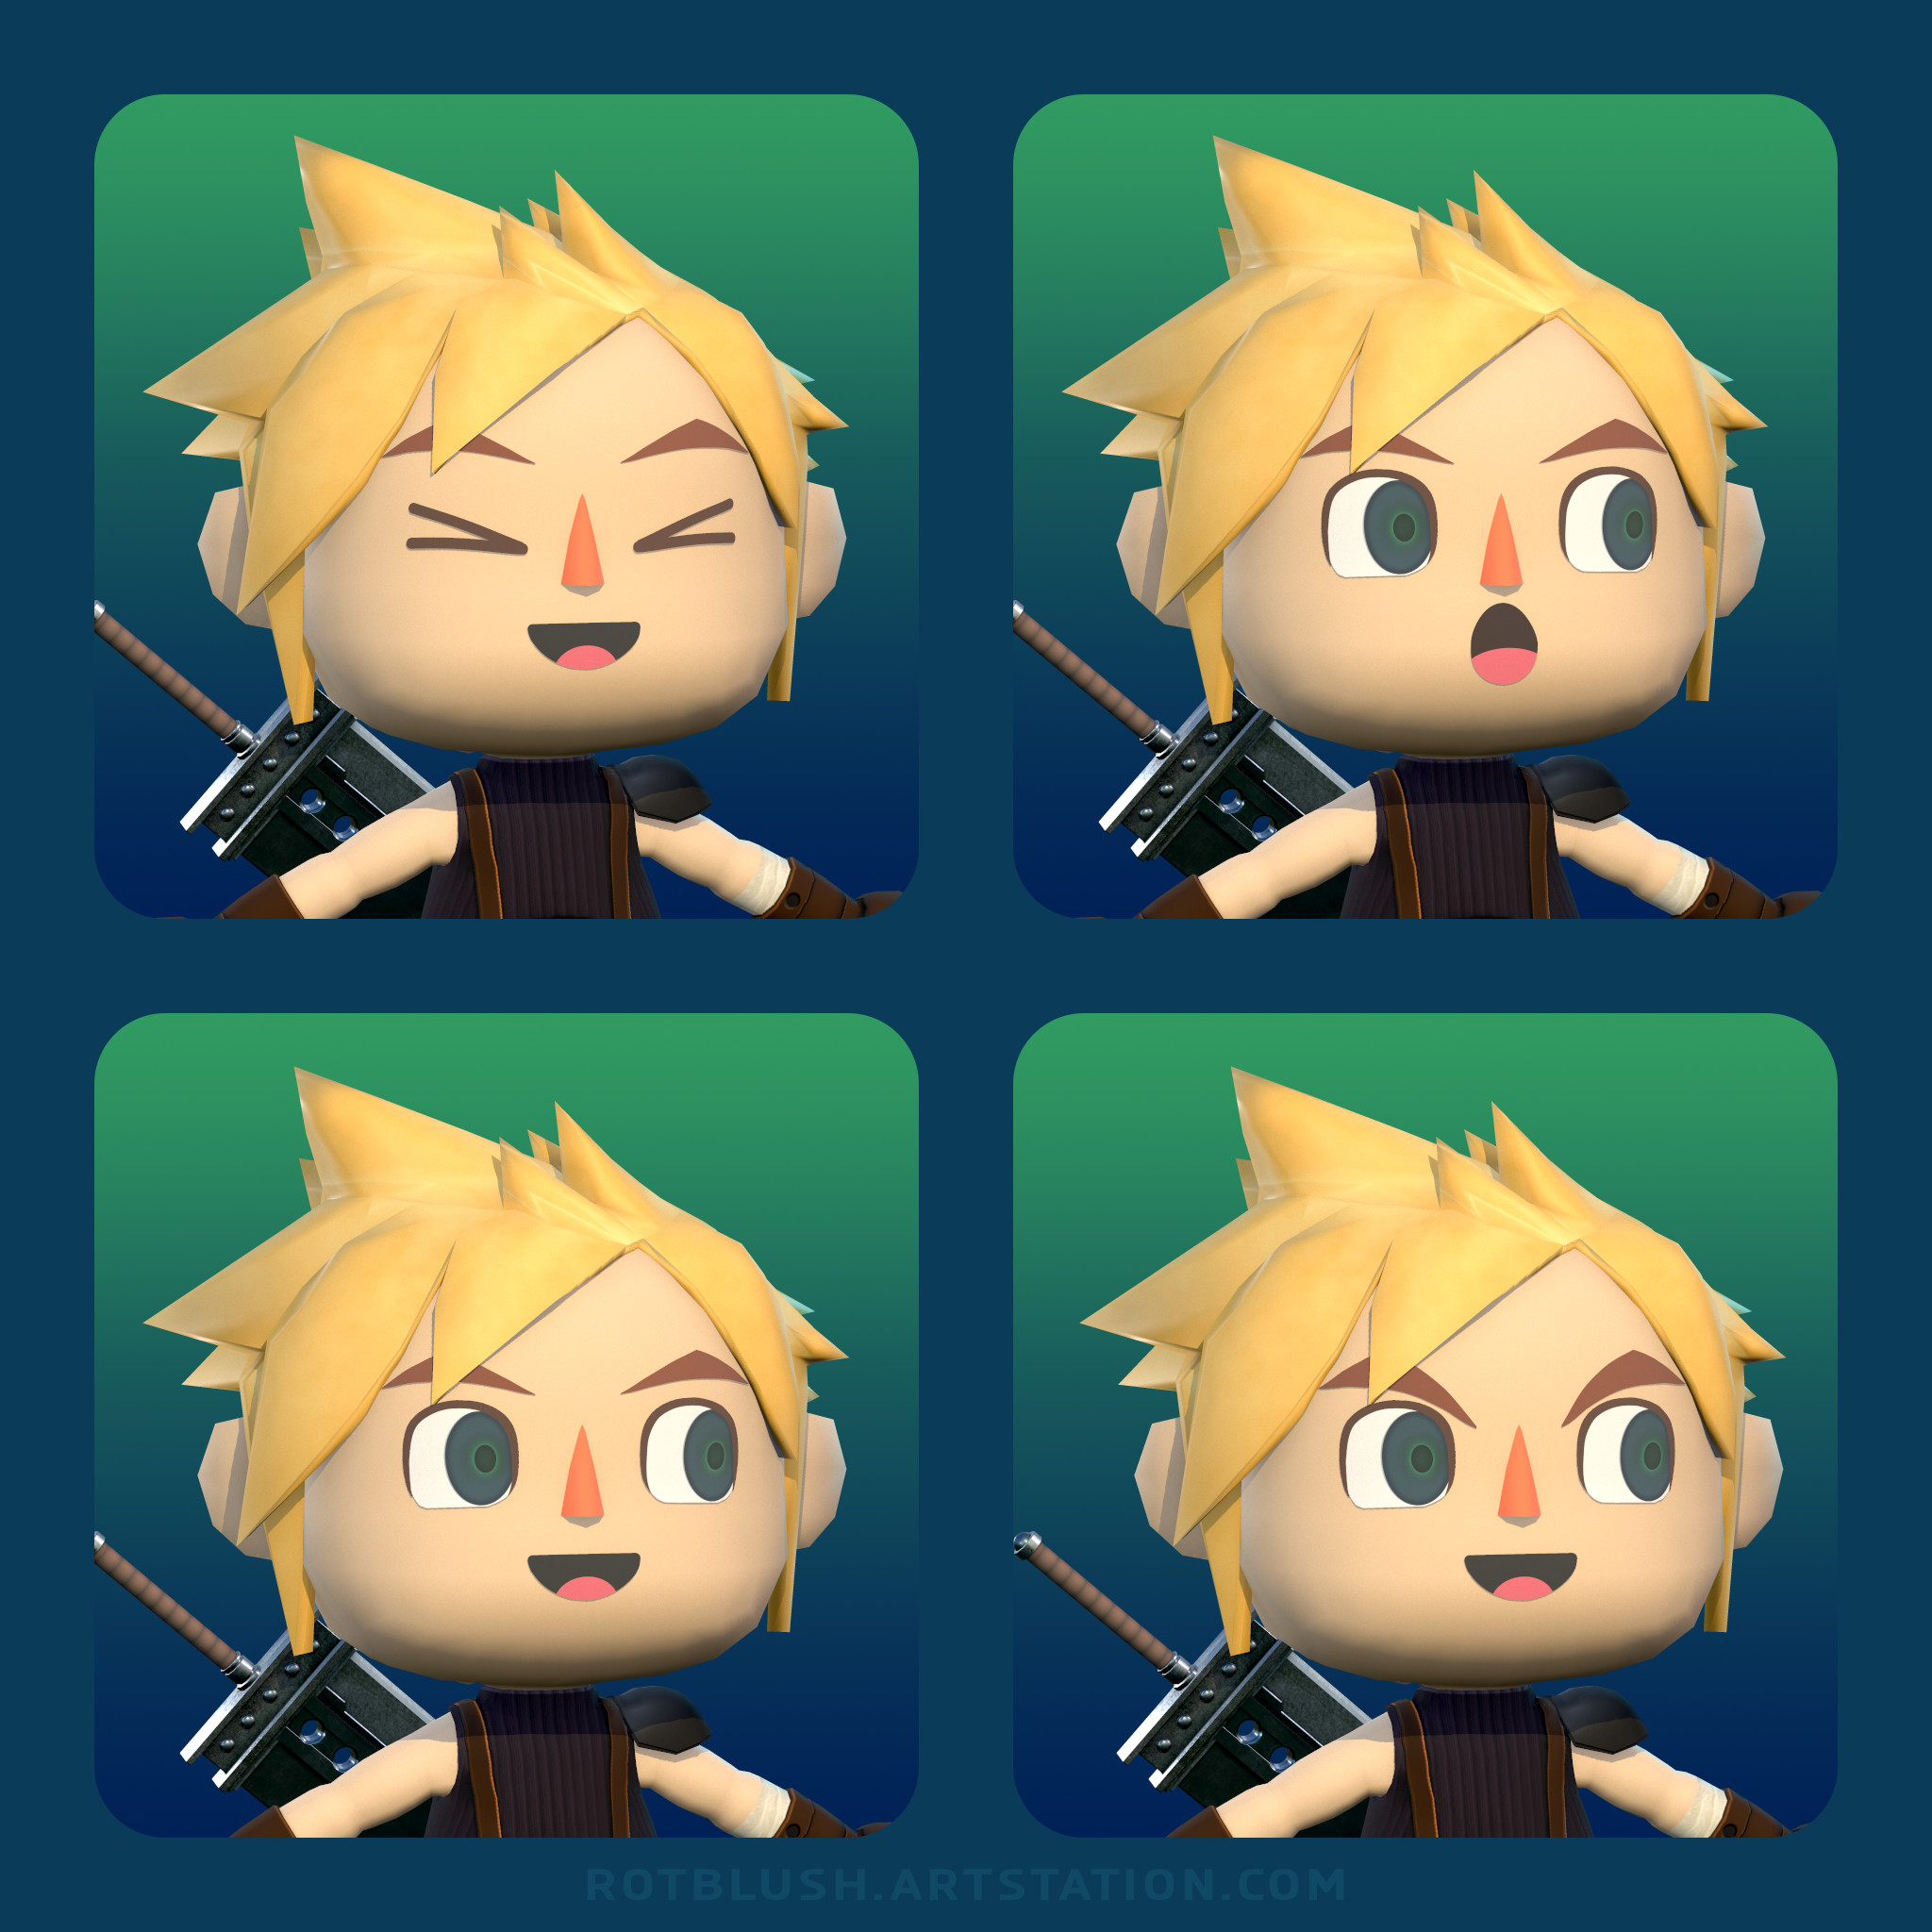 Different 2D facial expressions